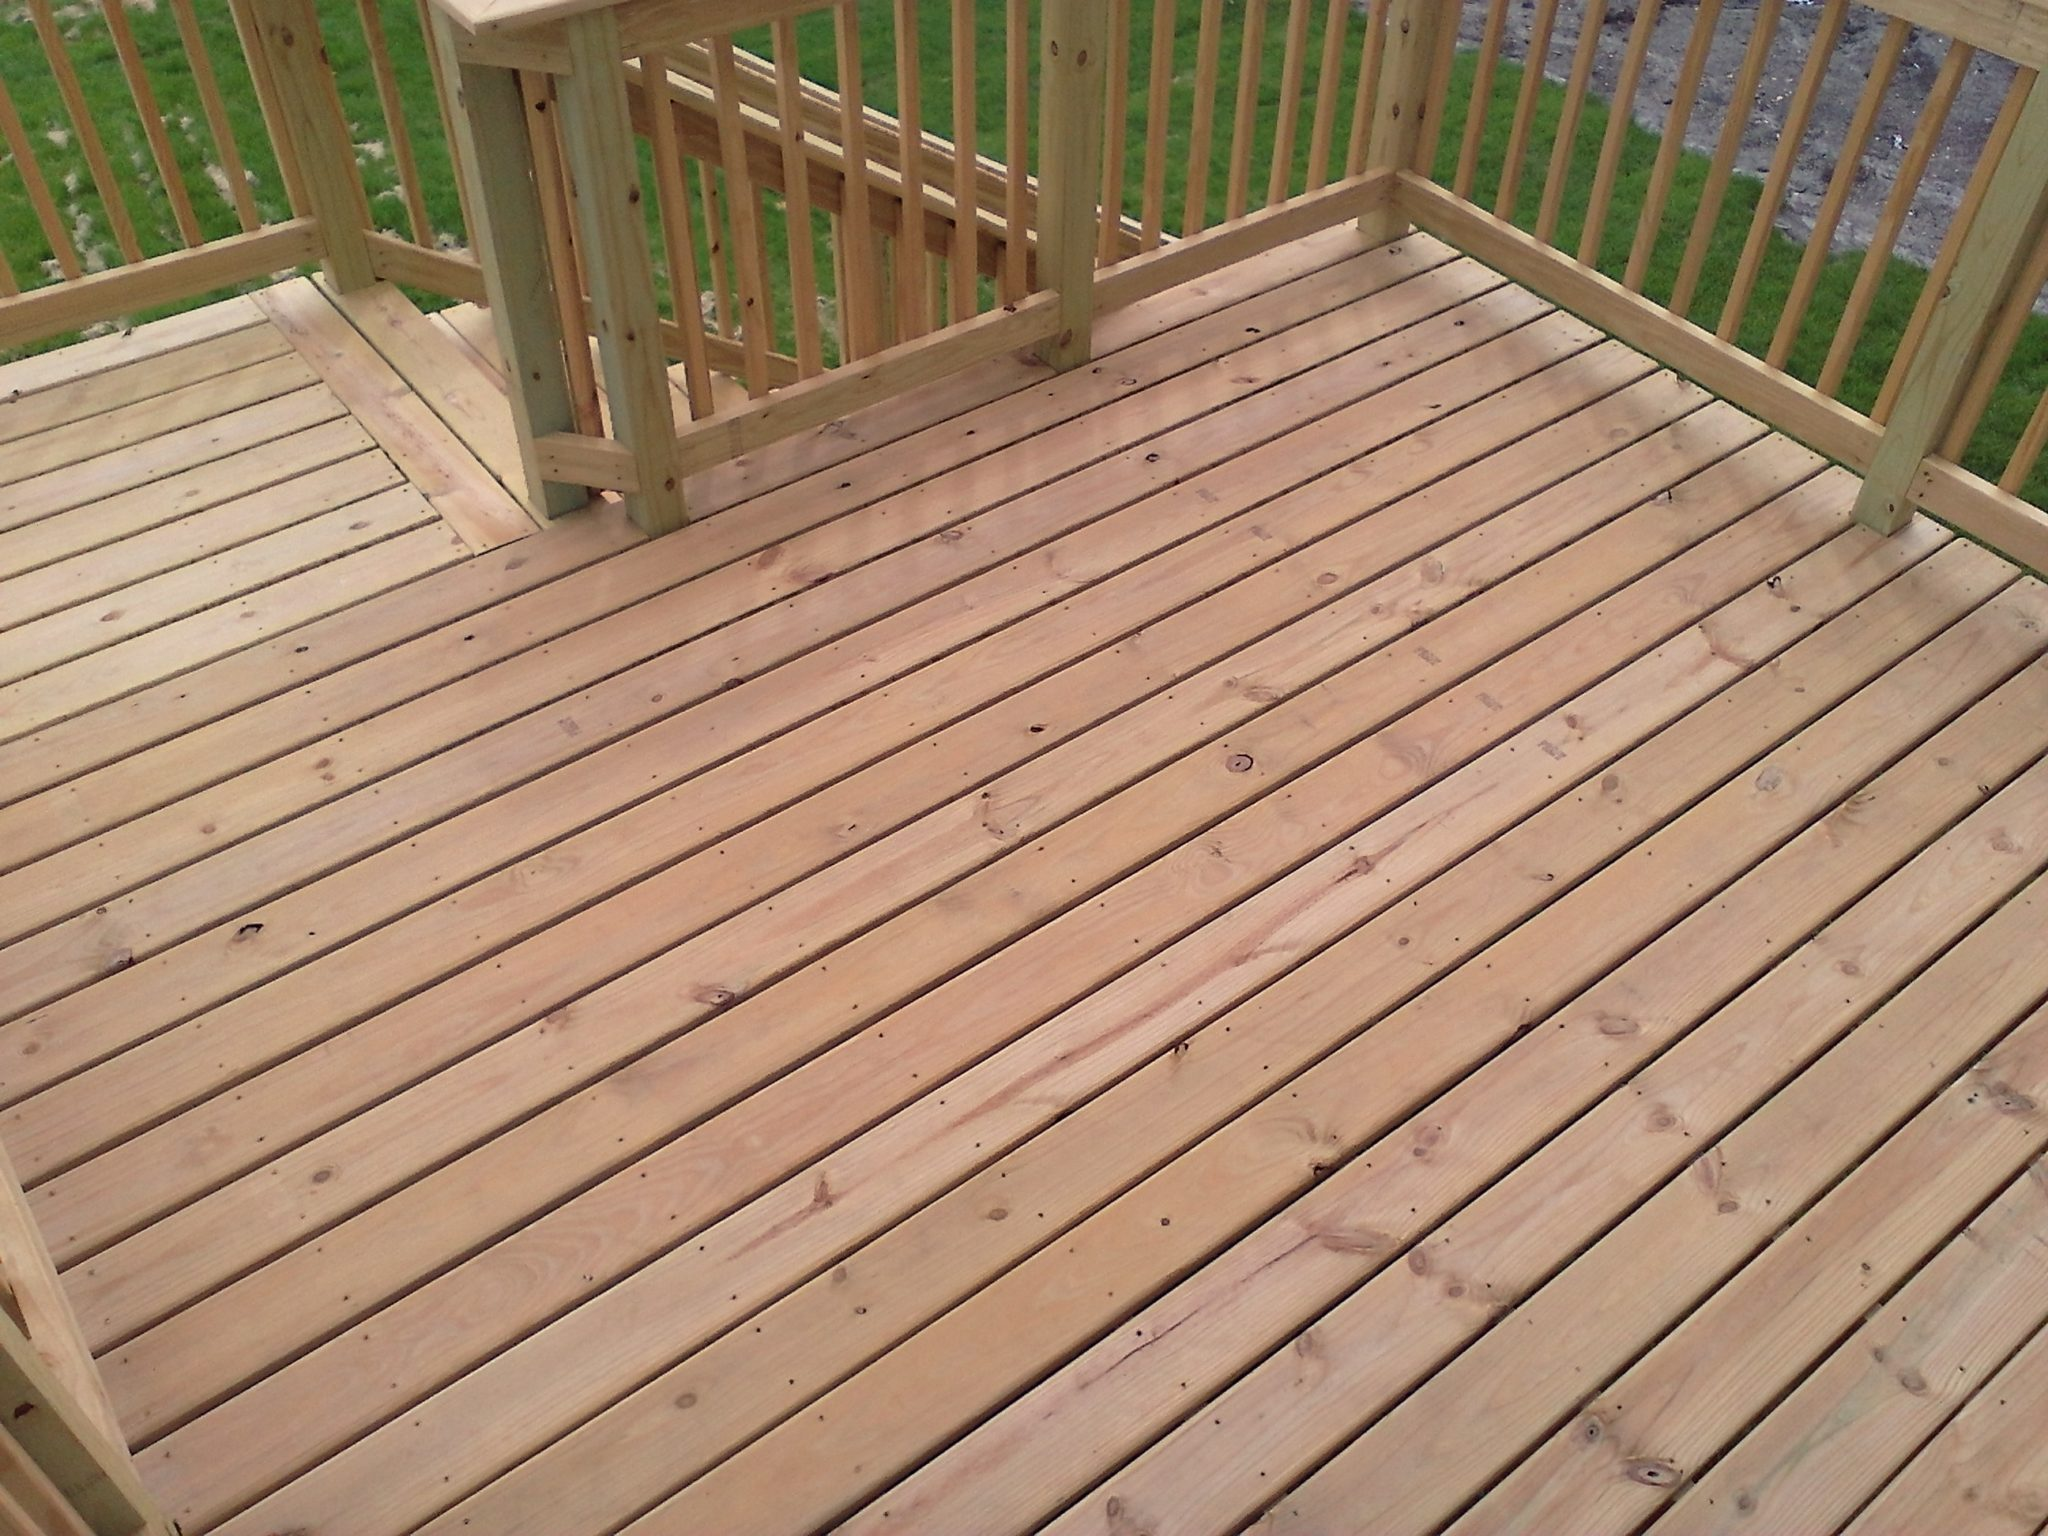 mankato-deck-and-railing-113220